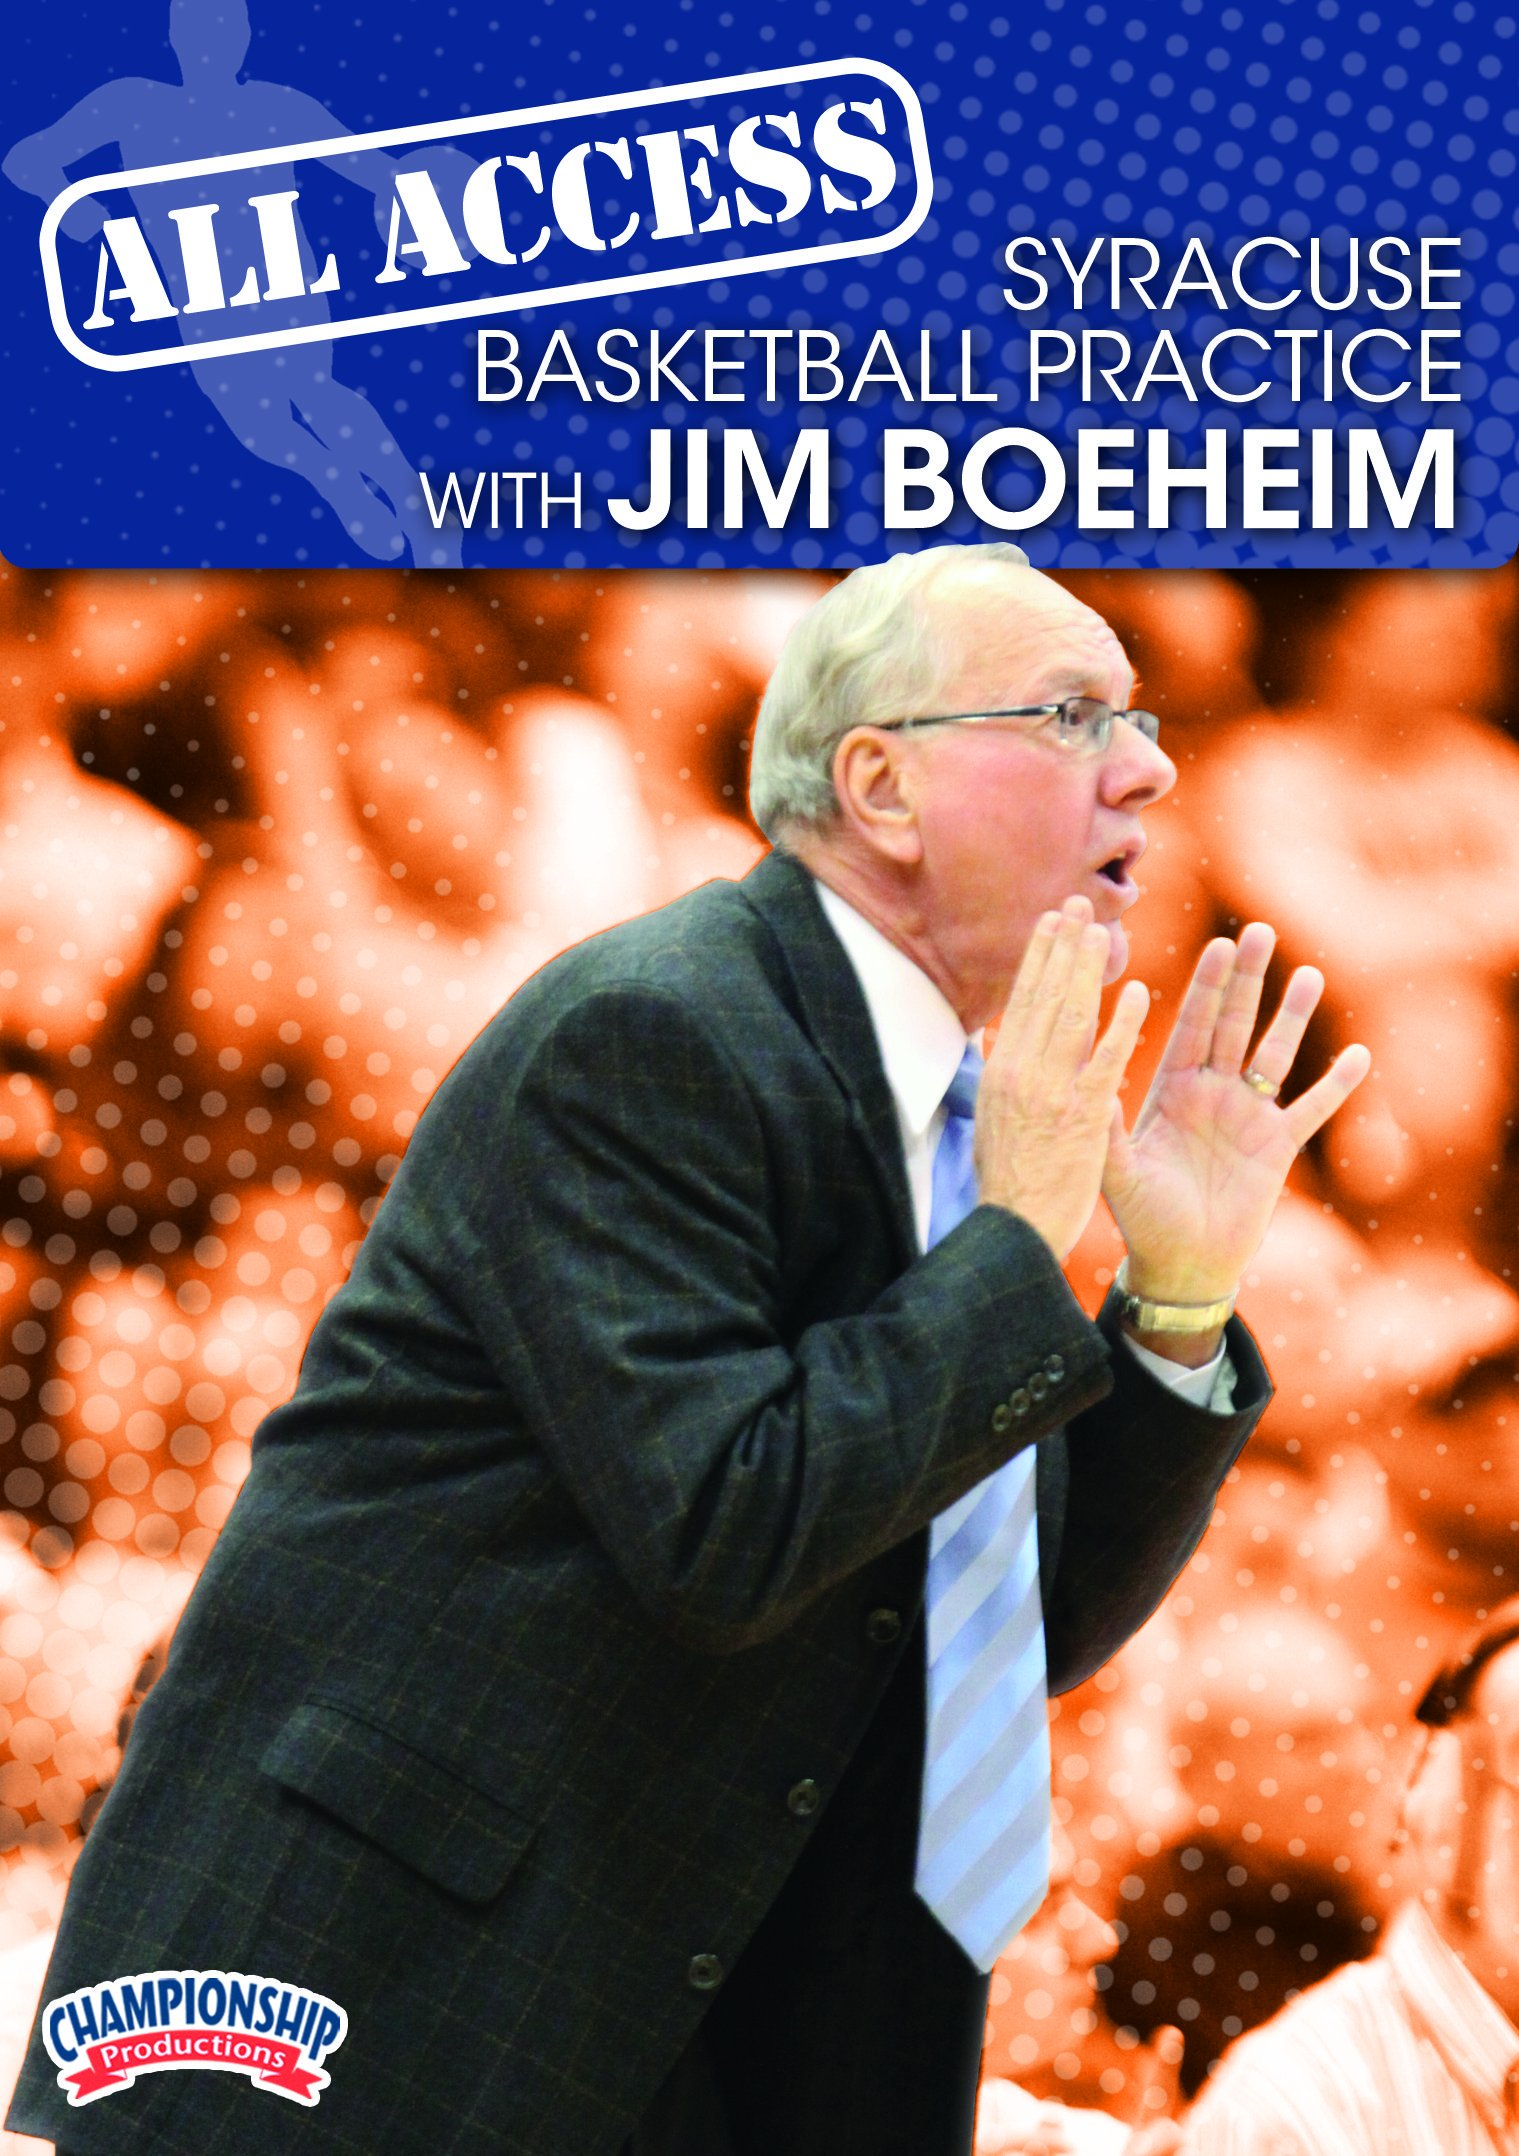 Championship Productions Jim Boeheim: All Access Syracuse Basketball Practice DVD by Championship Productions